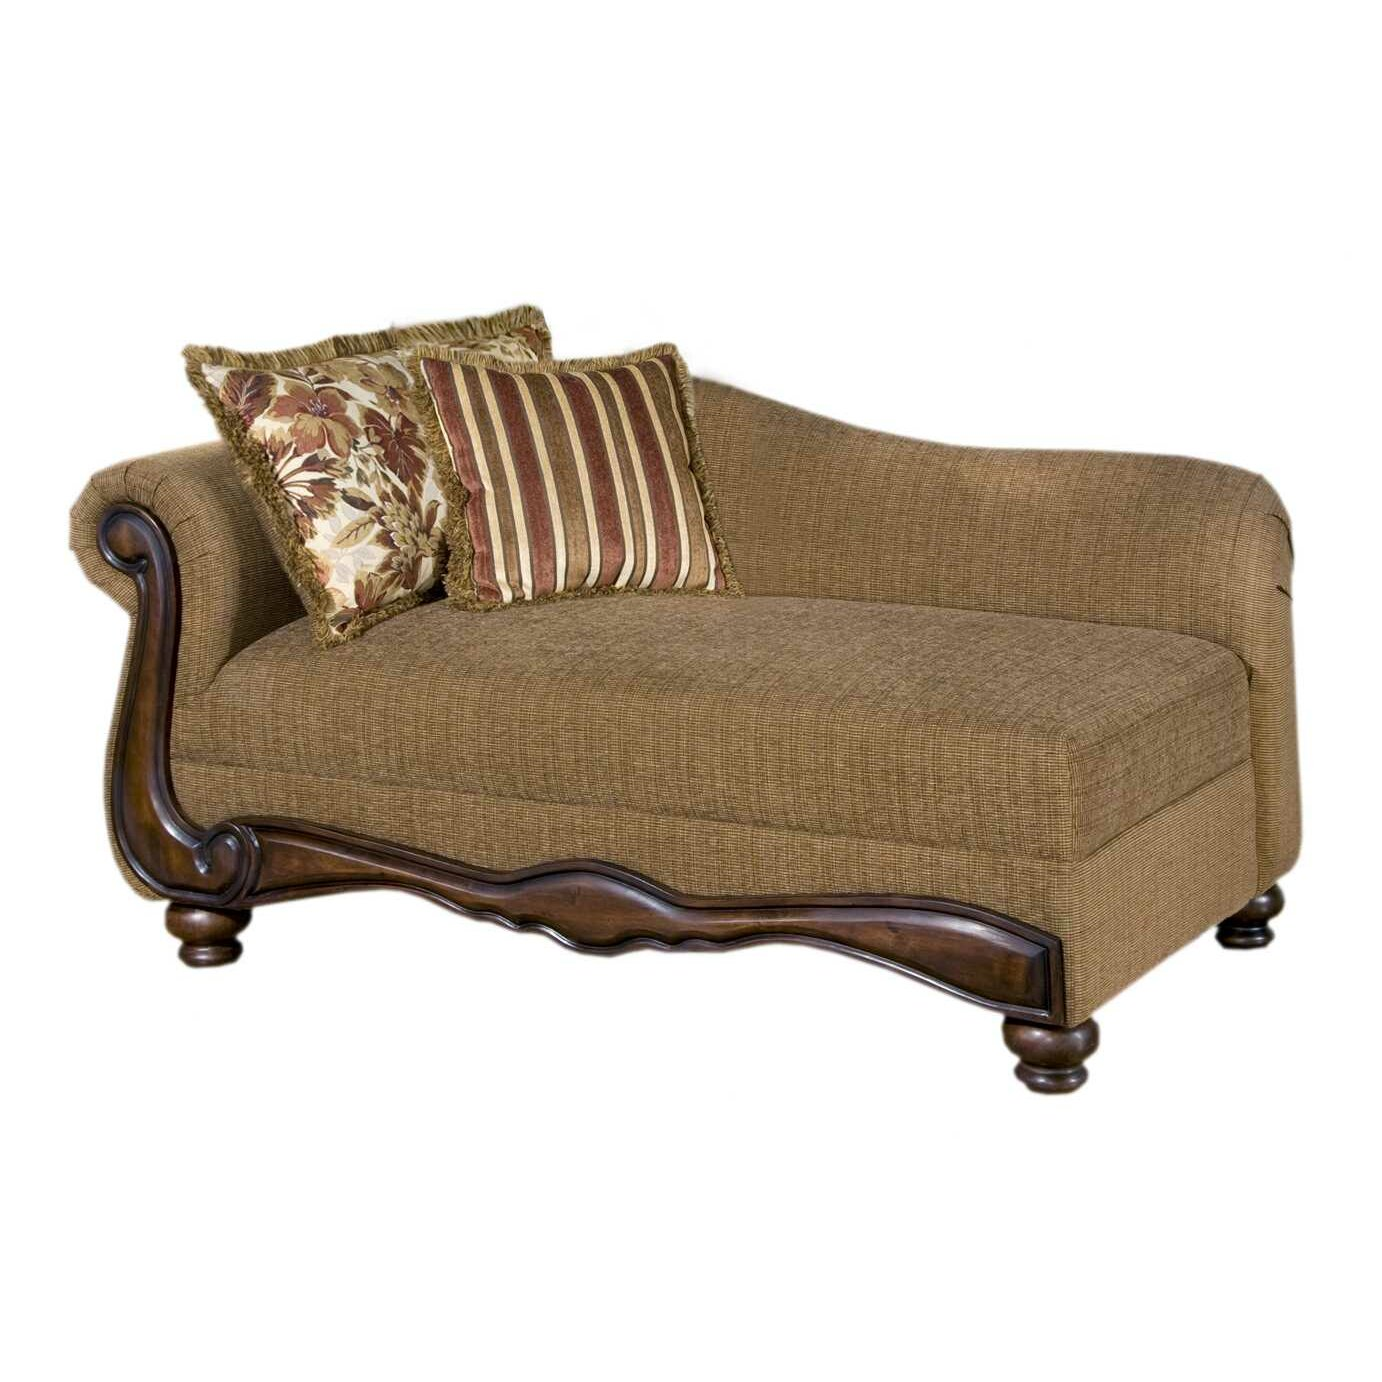 Serta Upholstery Chaise Amp Reviews Wayfair